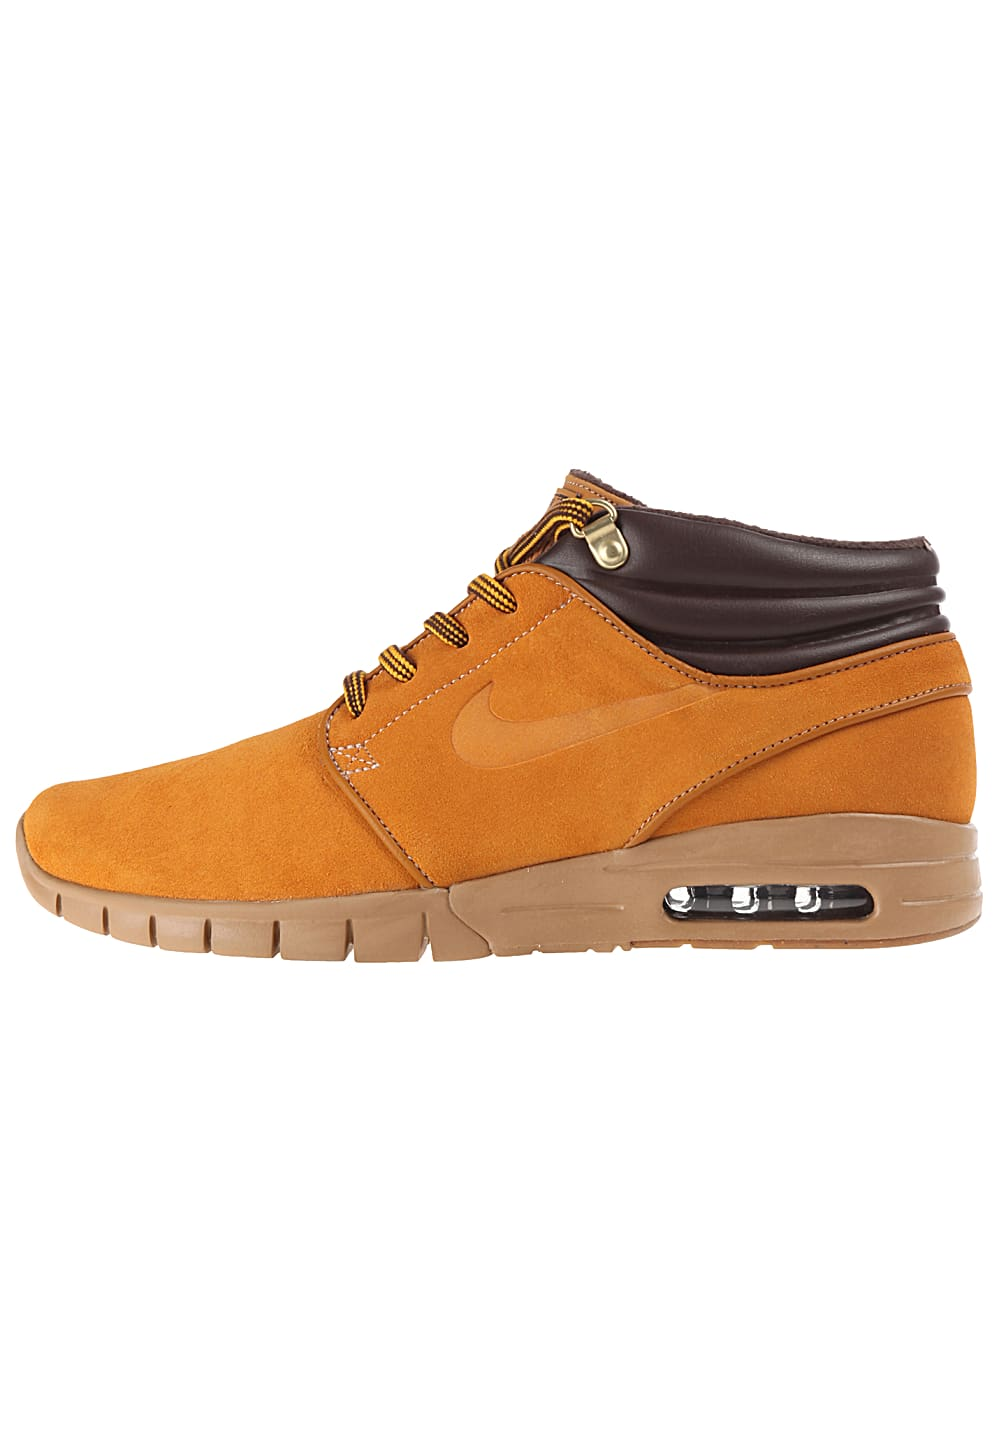 hot product pretty nice factory authentic NIKE SB Stefan Janoski Max Mid Premium - Sneakers for Men - Brown